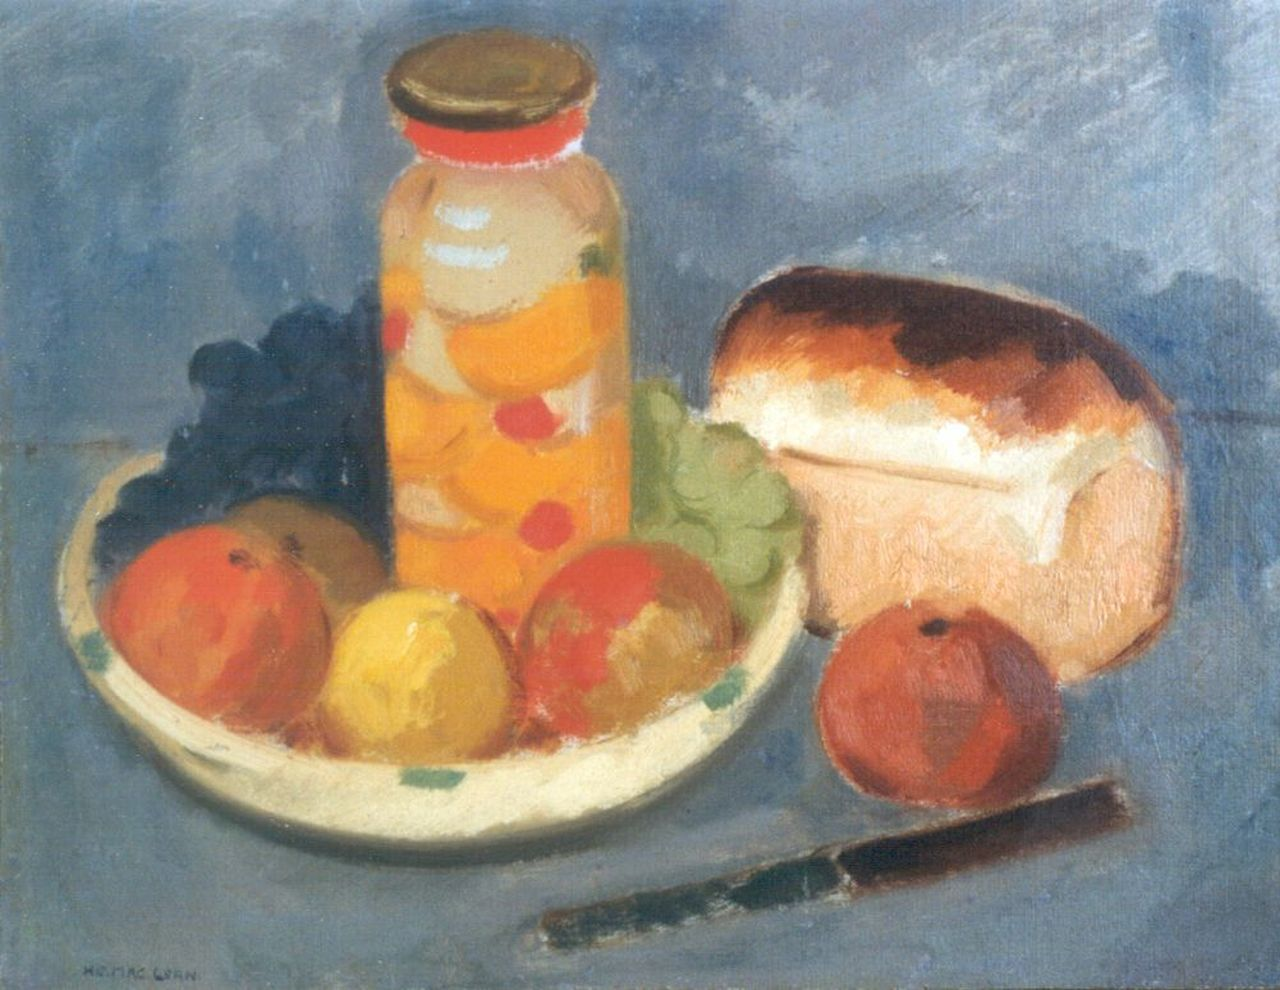 Henri Maclean | A still life with bread and a knife, oil on canvas, 35.5 x 45.6 cm, signed l.l.